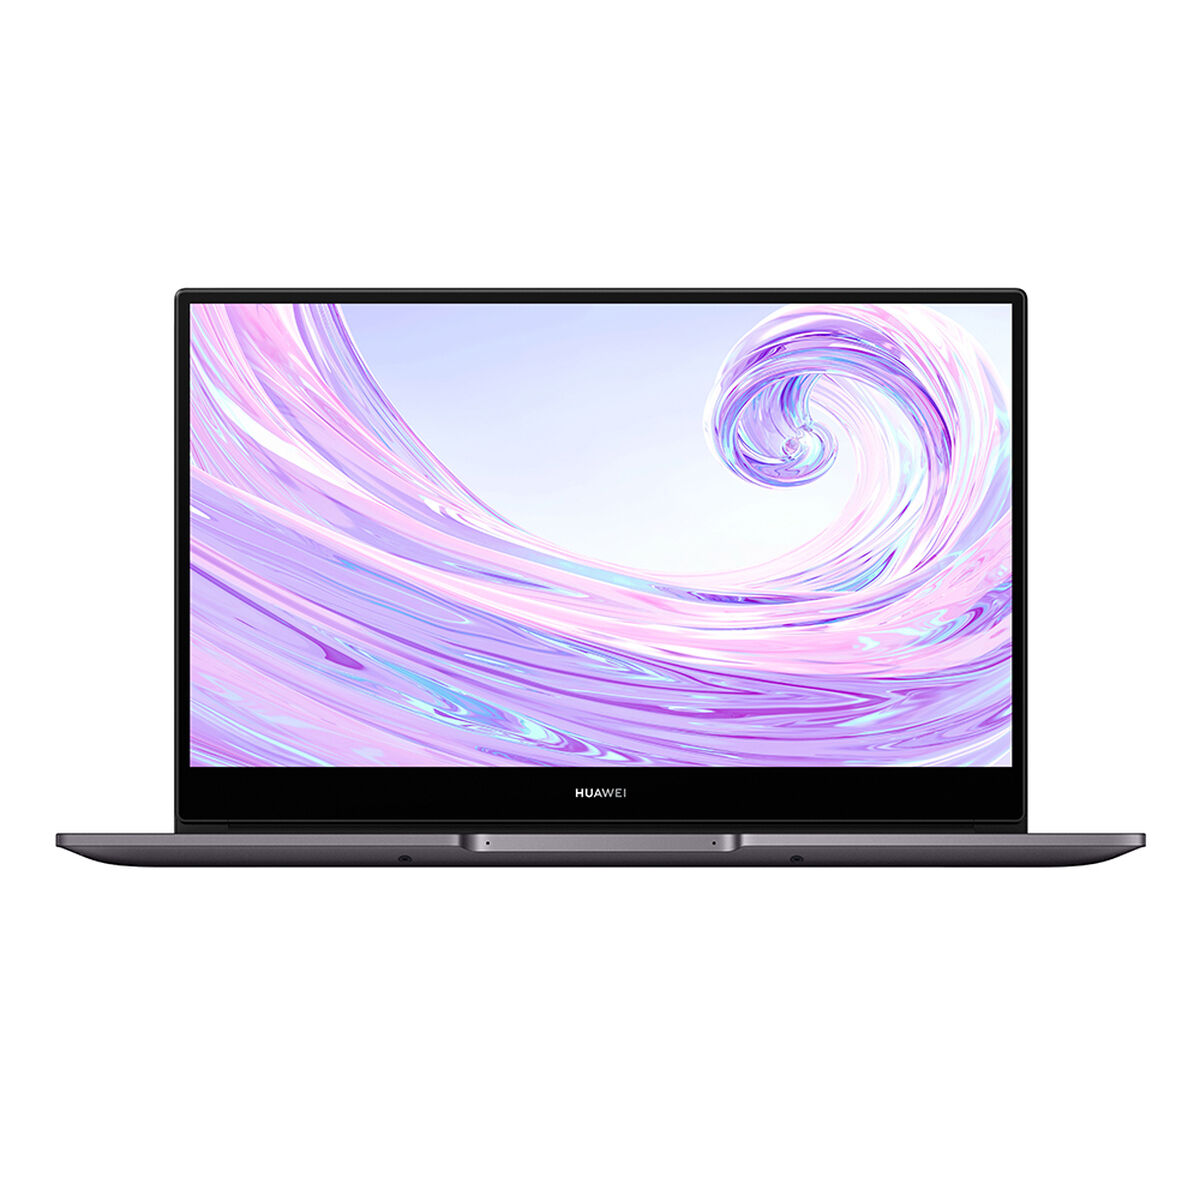 Notebook Huawei MateBook D 14 Ryzen 5 8GB 512GB SSD 14""